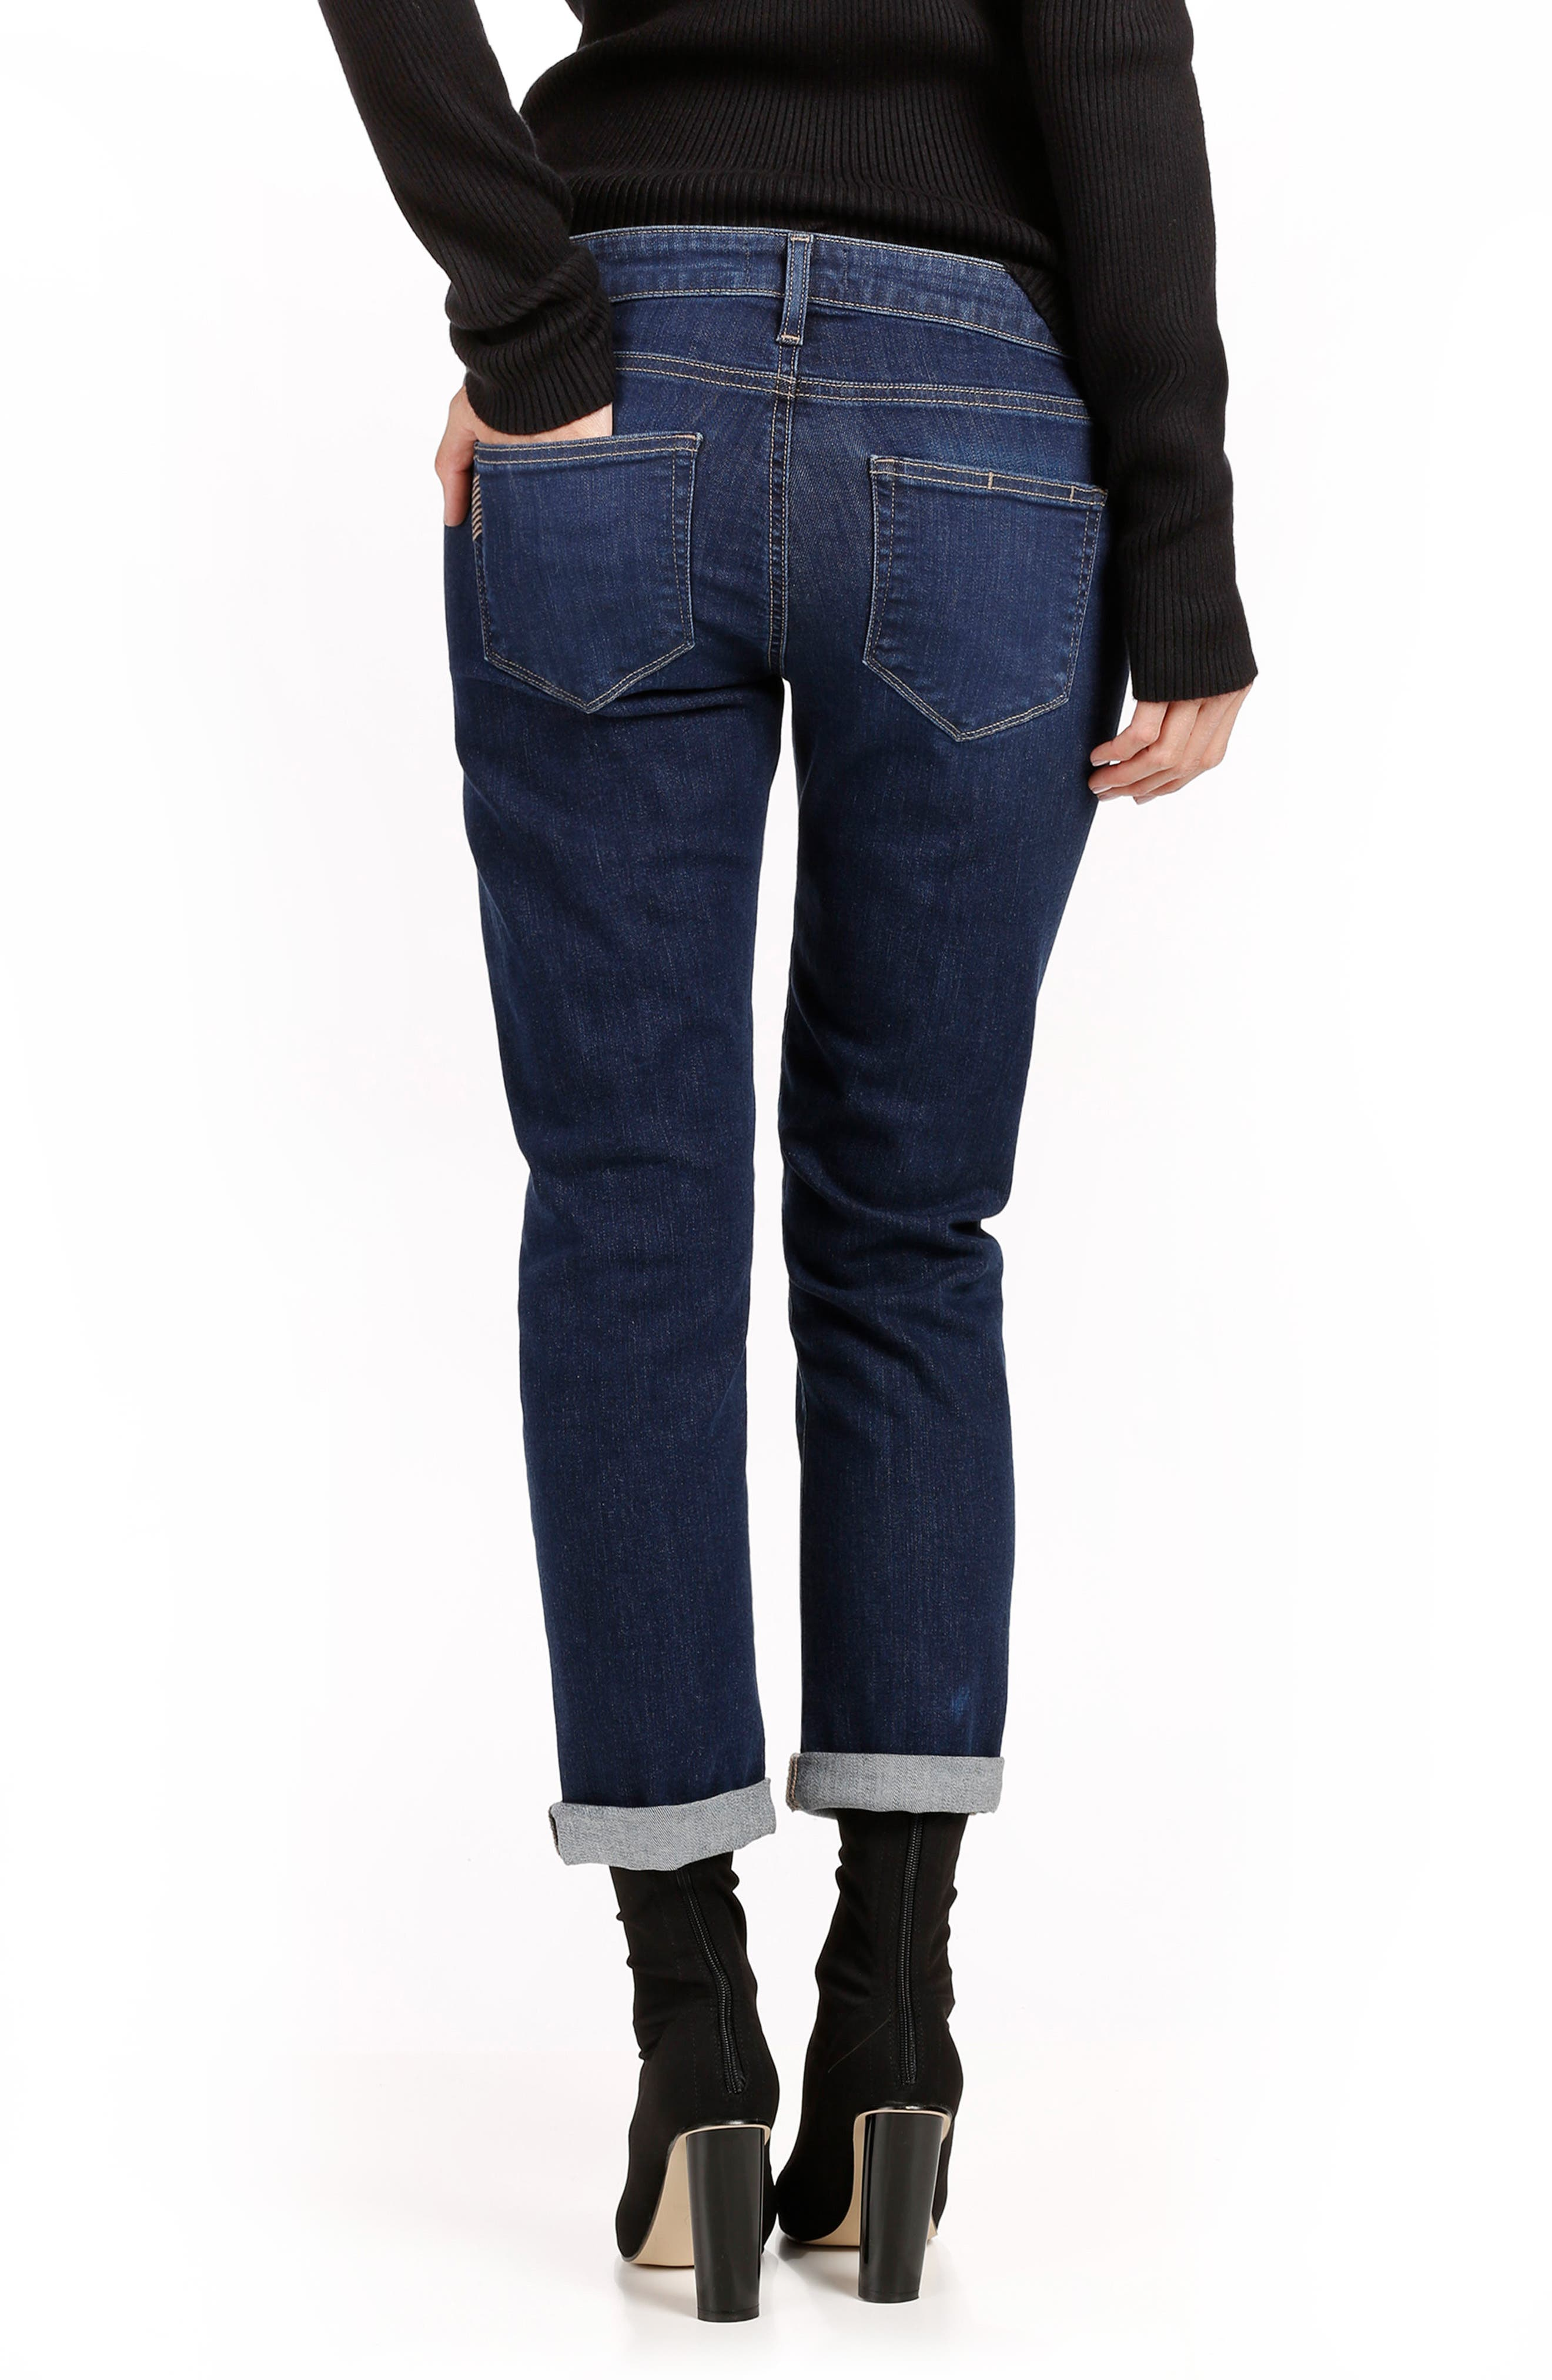 Brigitte Transcend Vintage High Waist Crop Boyfriend Jeans,                             Alternate thumbnail 2, color,                             ENCHANT